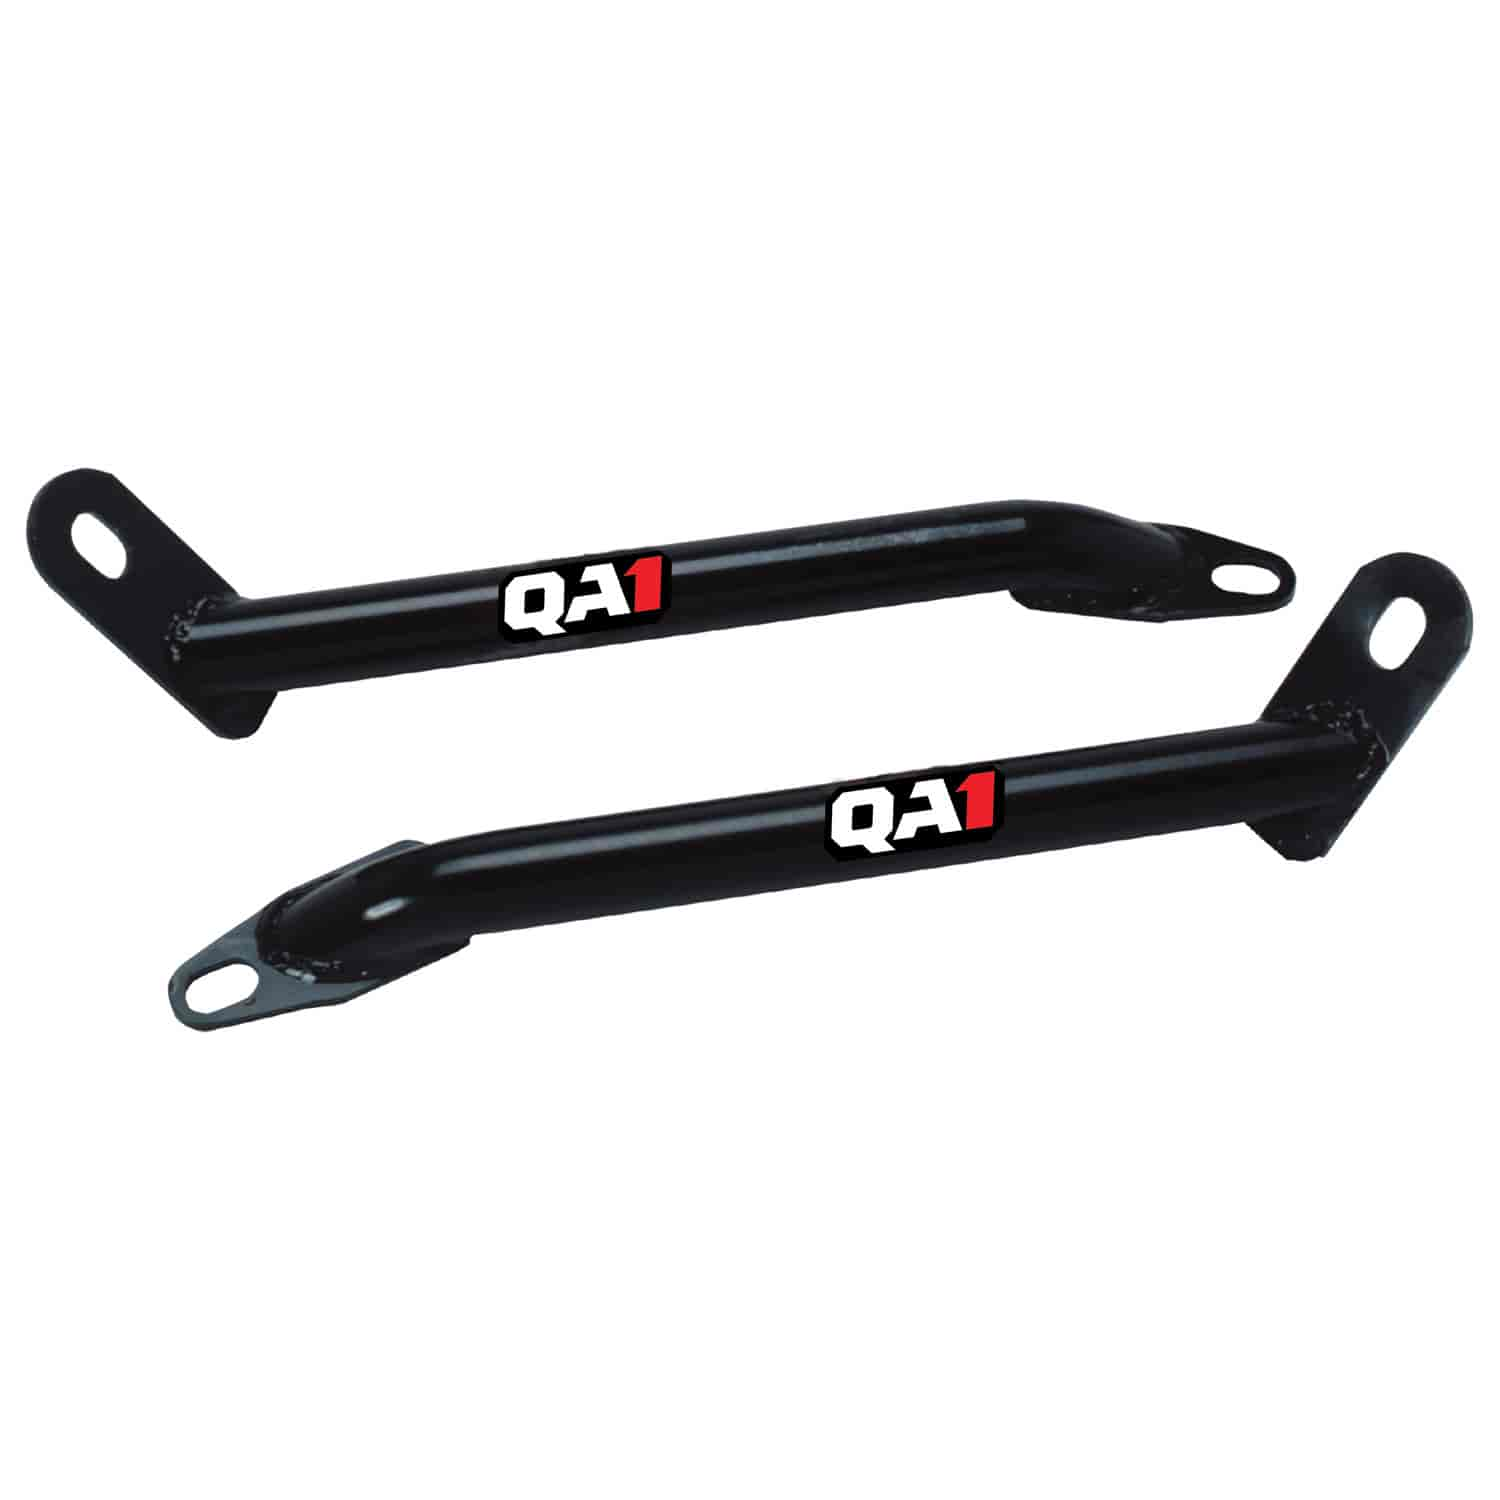 QA1 5210 - QA1 Tubular Braces